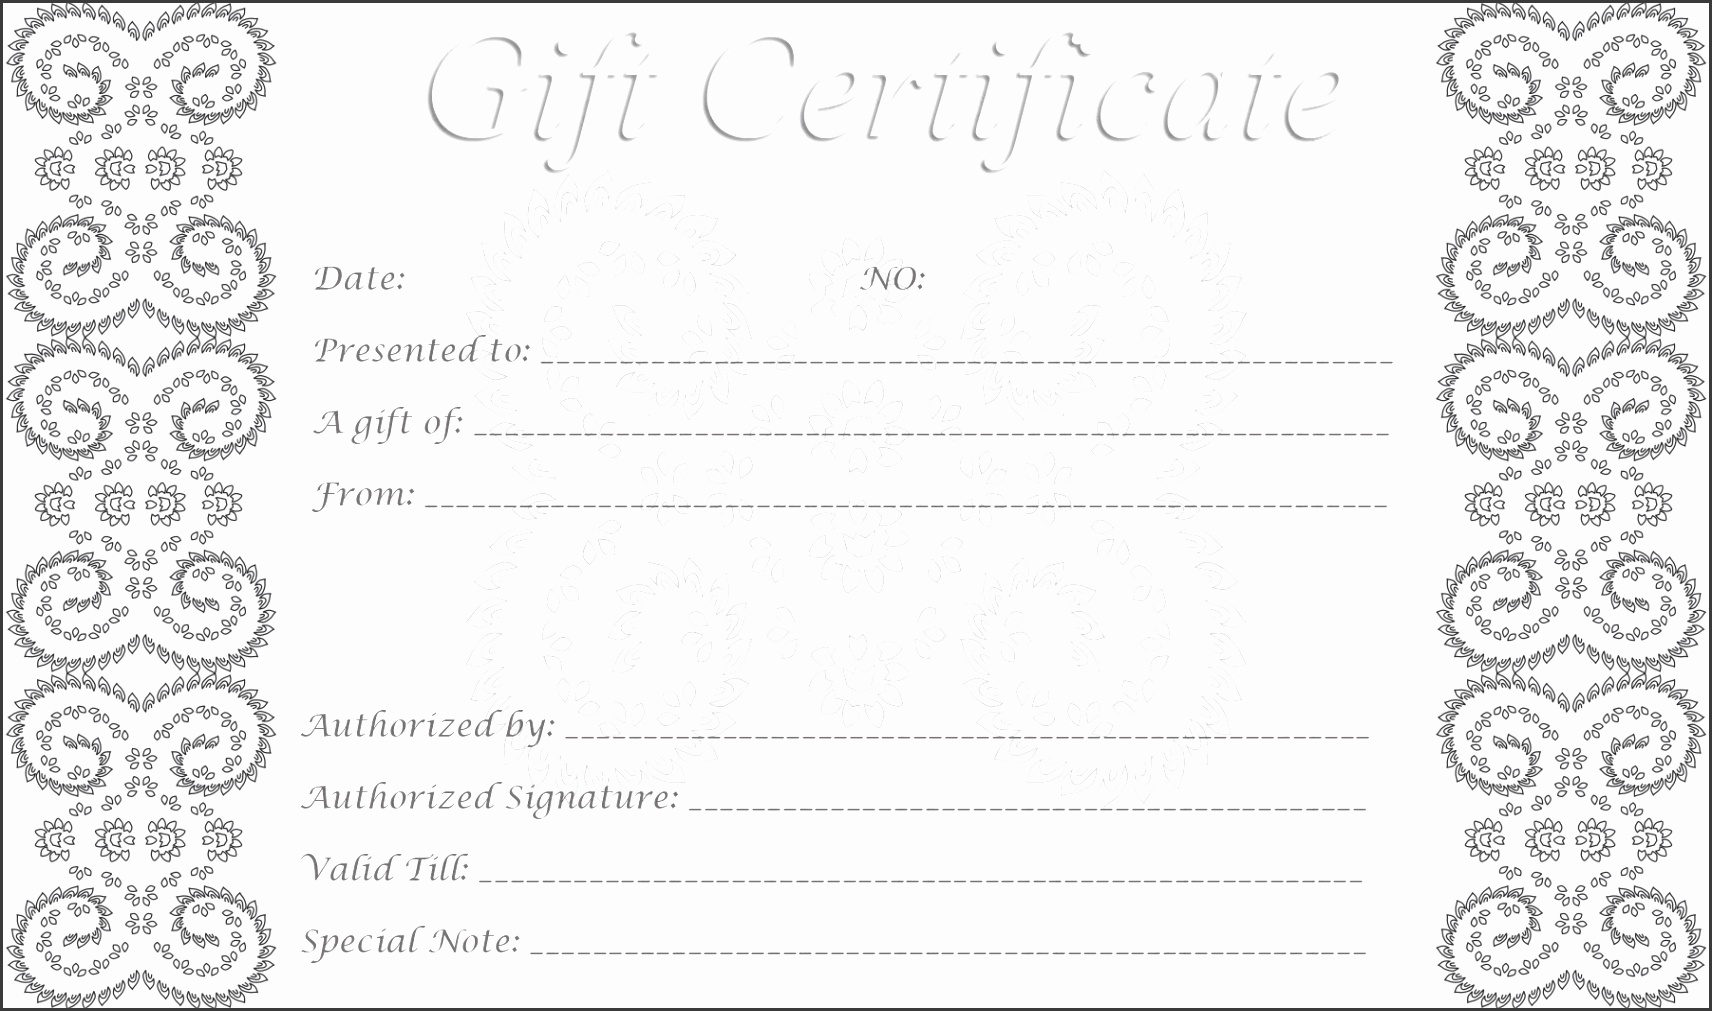 Business certificate templates netflix t certificate free christmas t certificate templates certificates of free printable